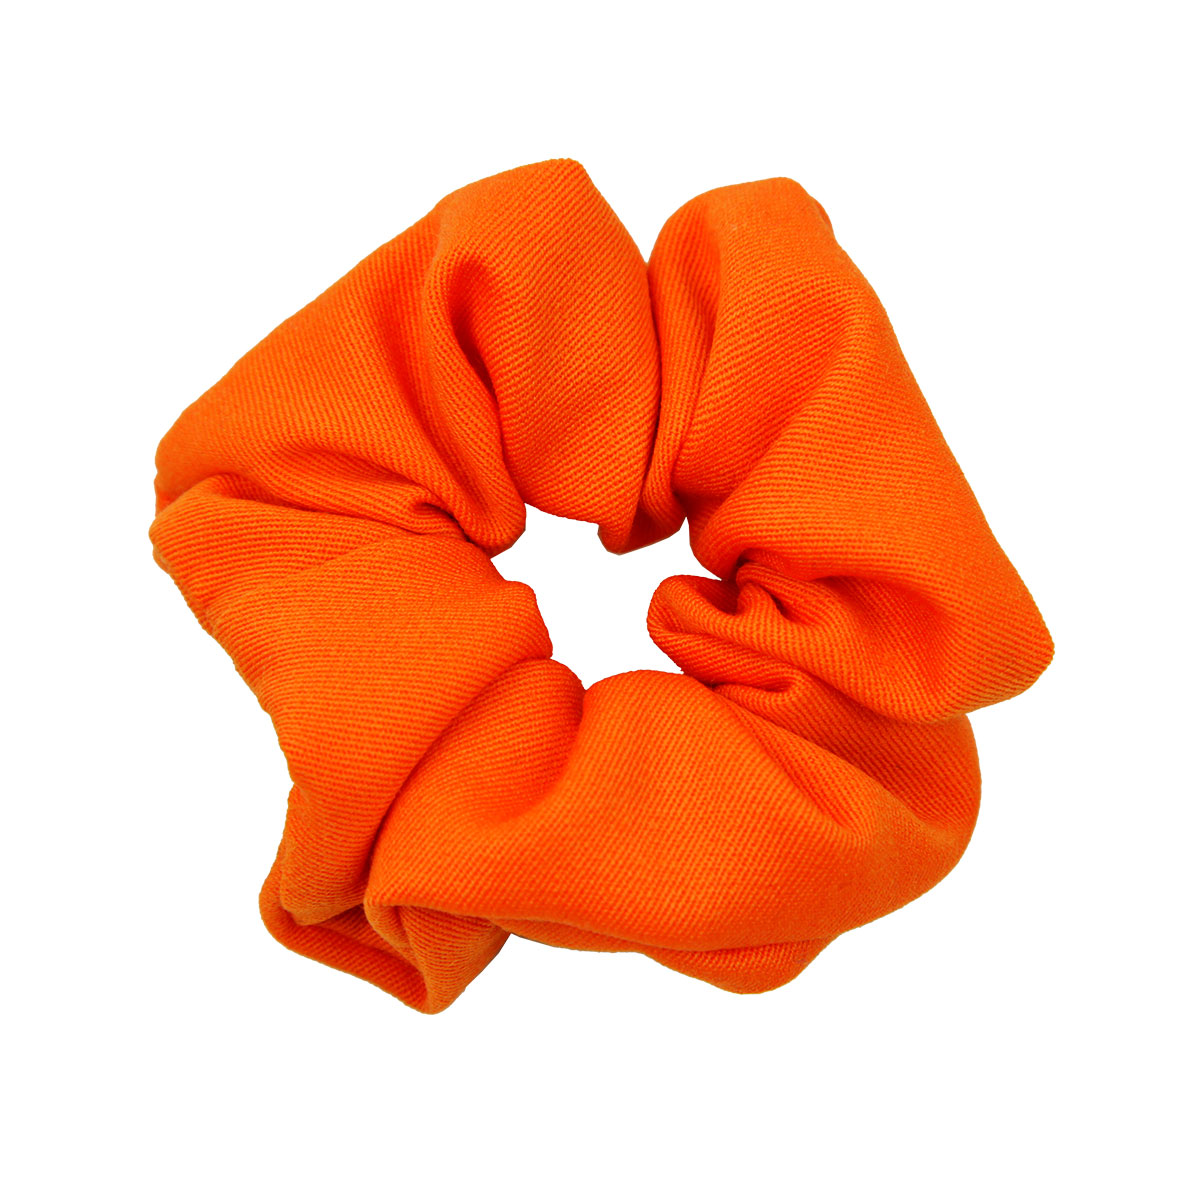 The Capital Scrunchy